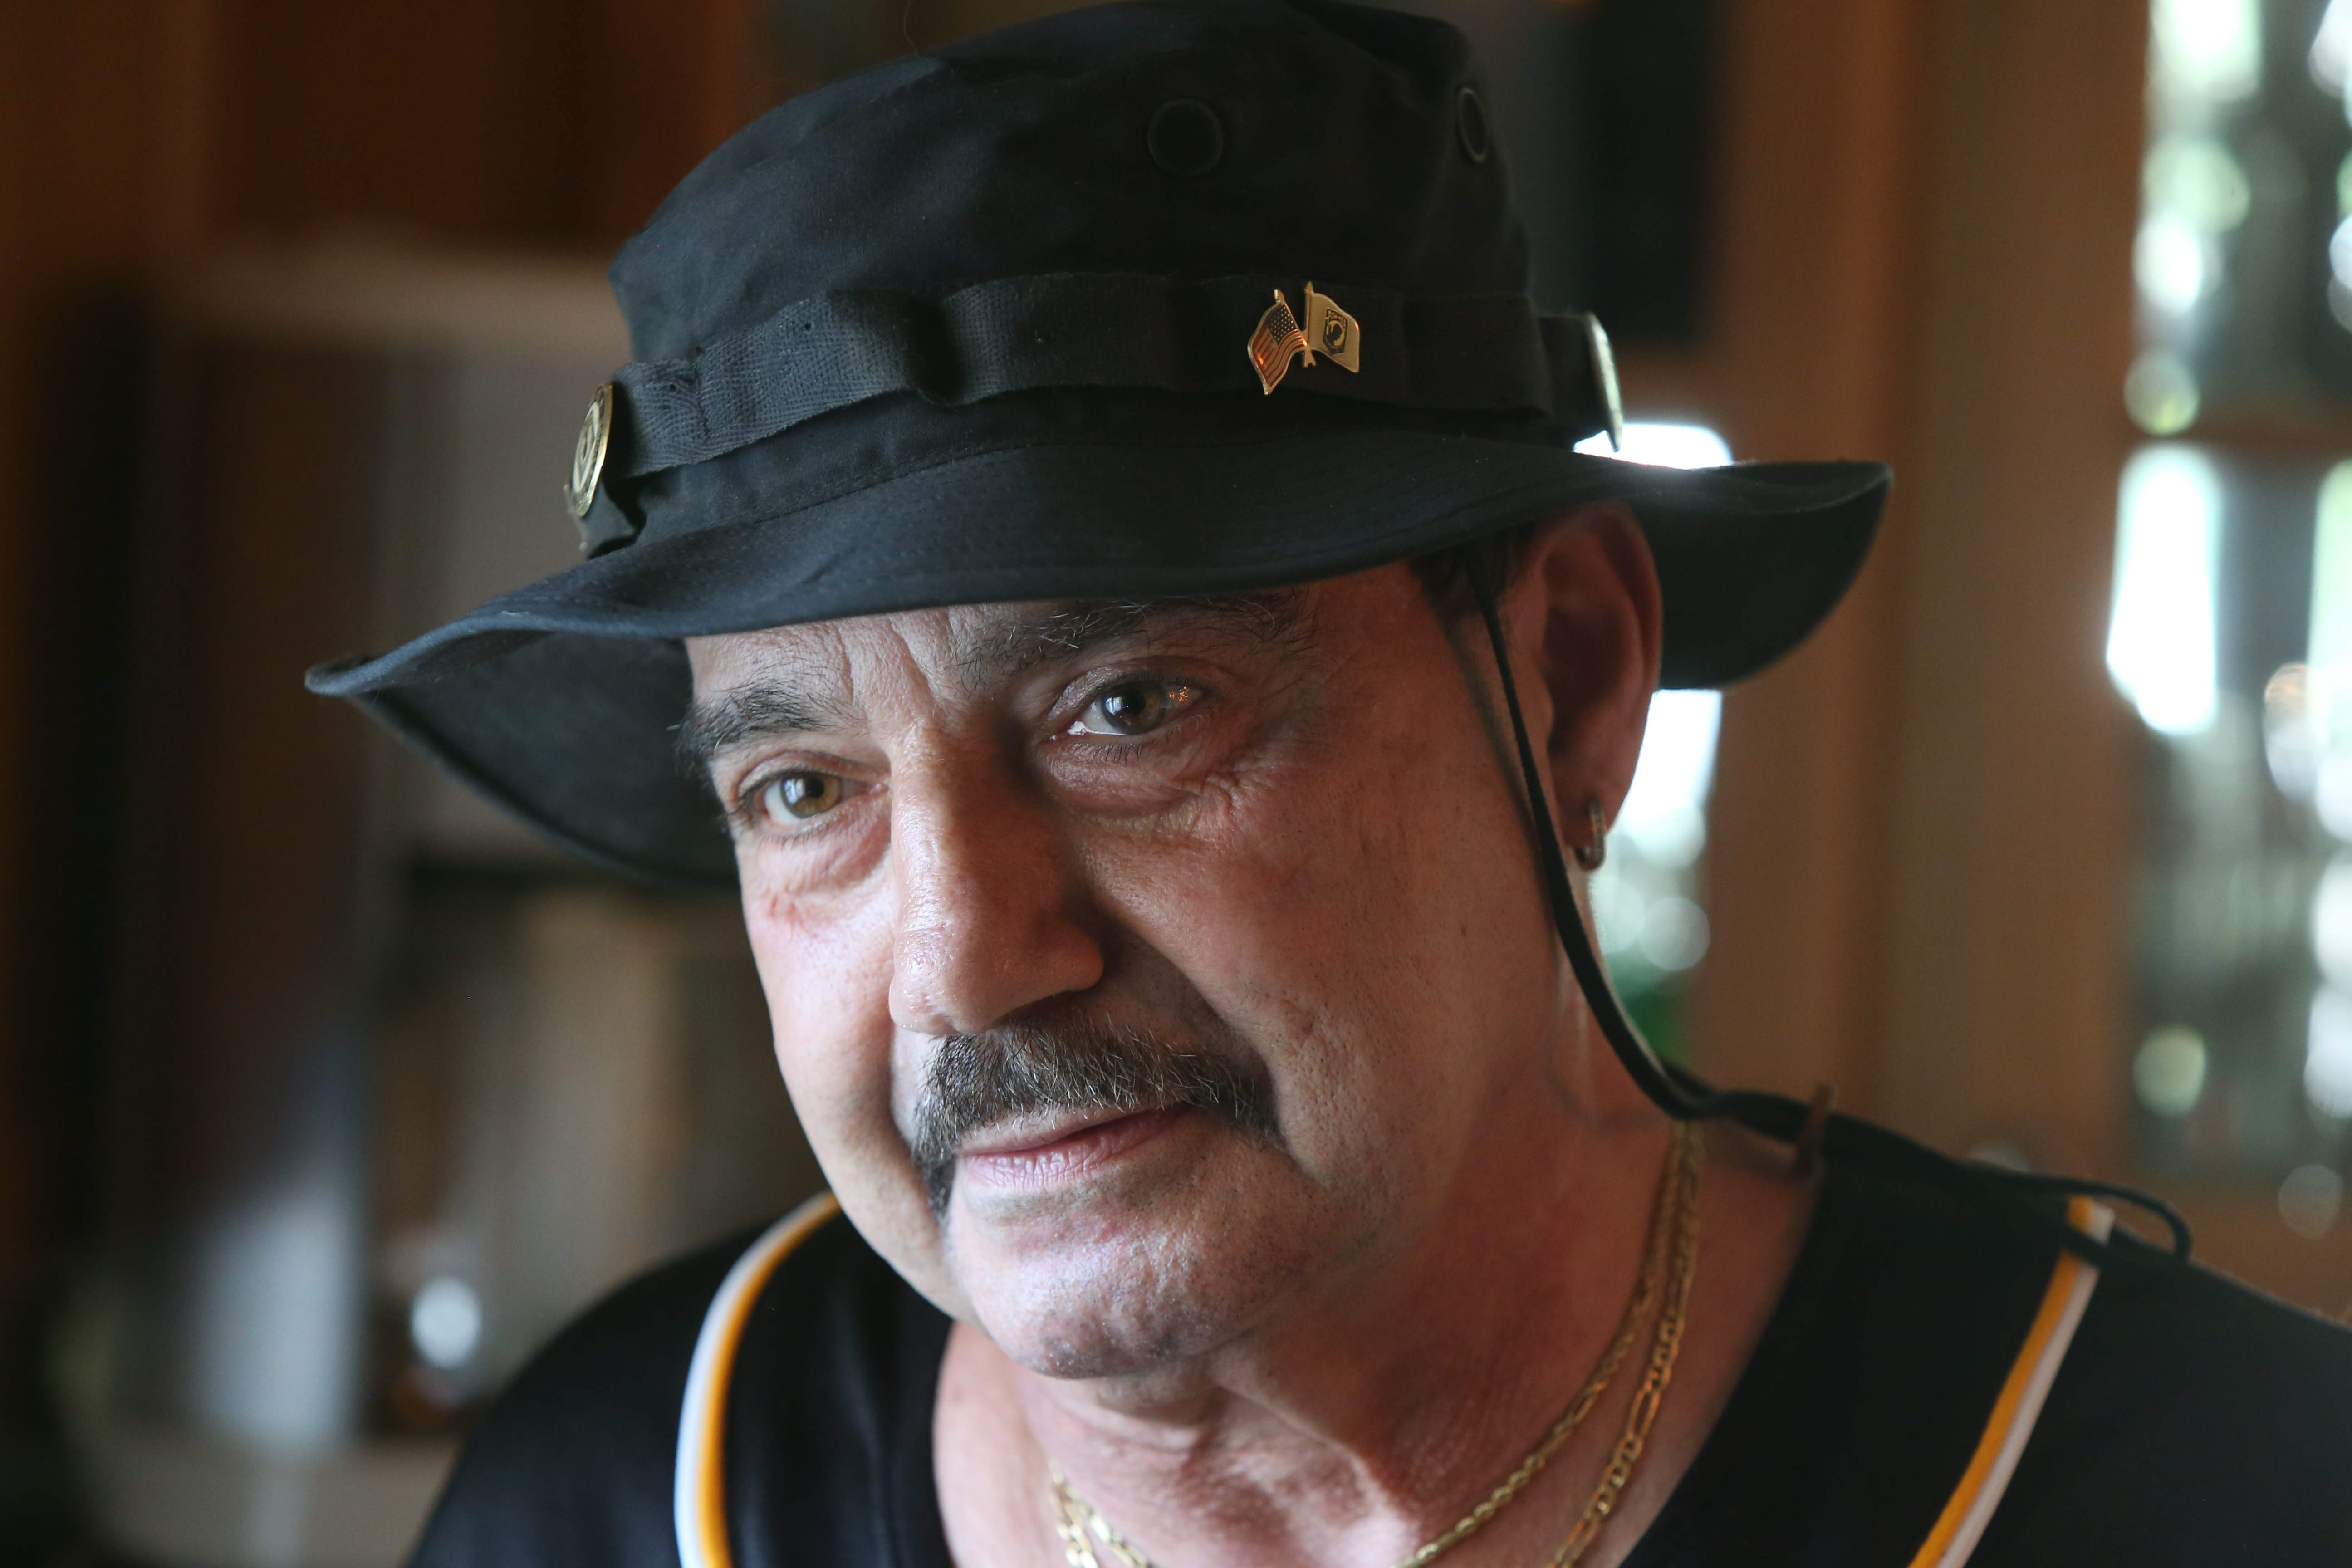 """""""I wake up in cold sweats at night from dreams about the war, actually re-enactments,"""" says Vietnam vet Thomas A. Gena."""